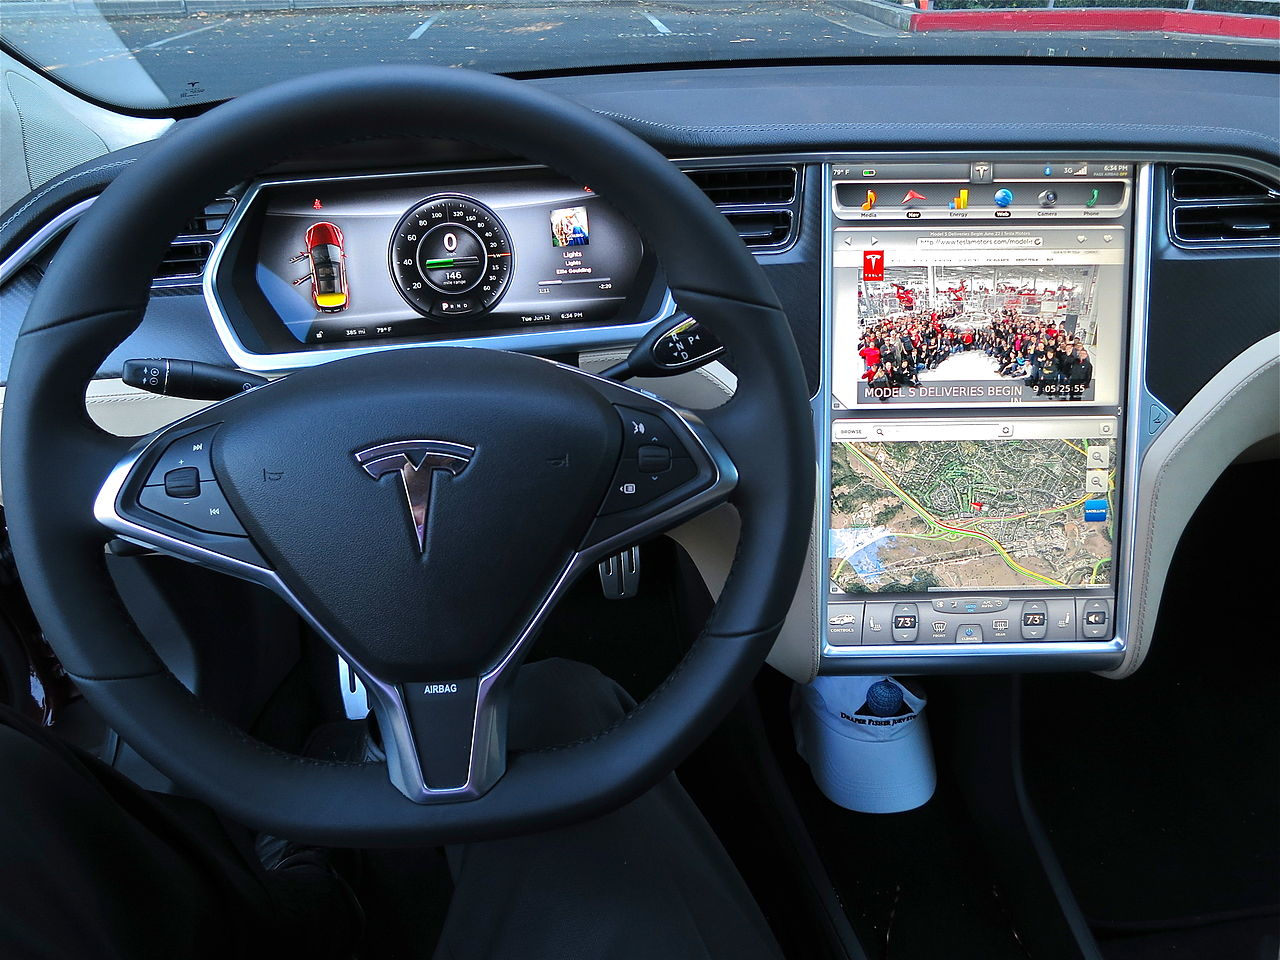 1280px-Tesla_Model_S_digital_panels